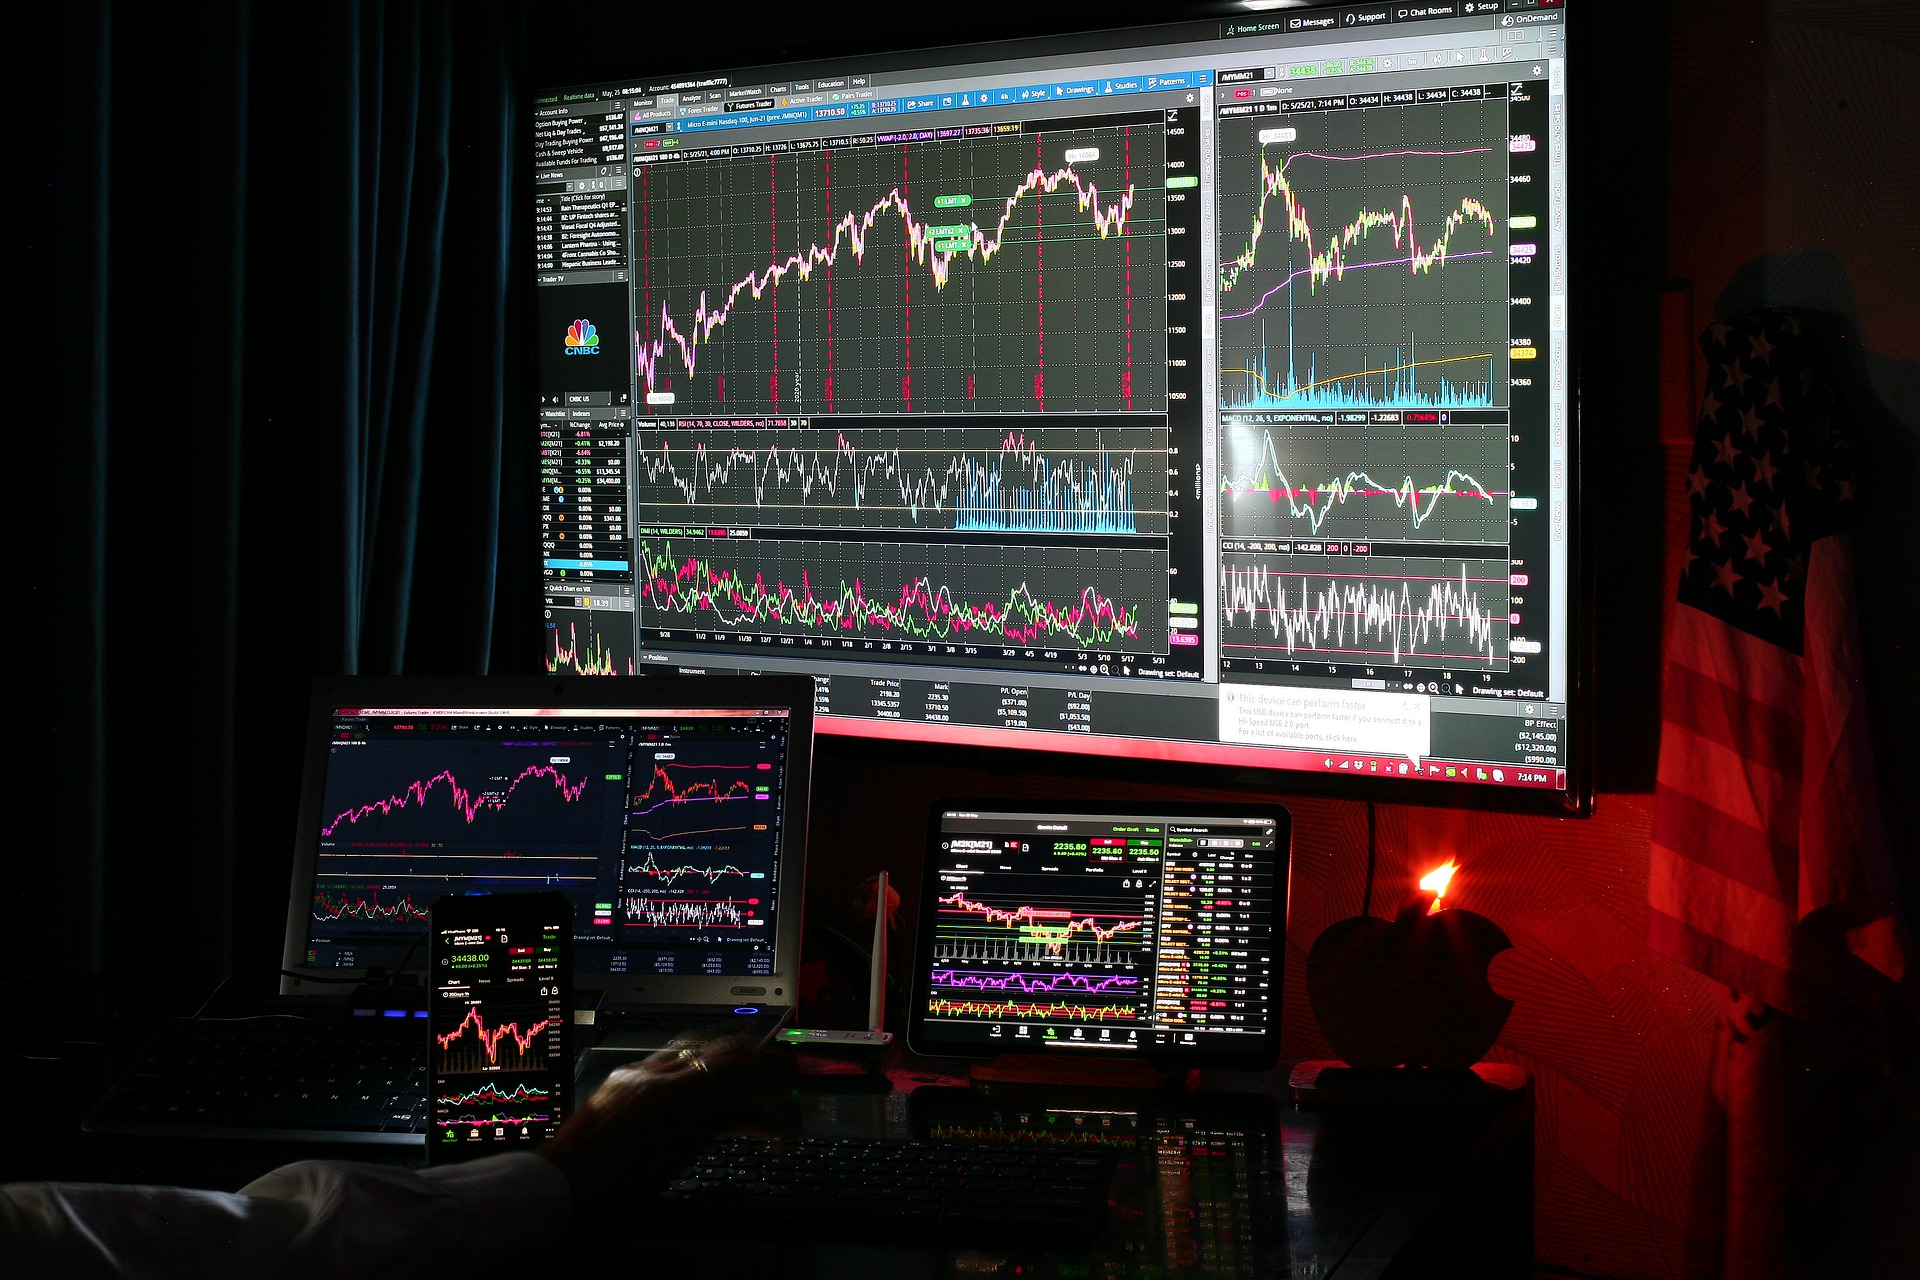 Group500 trading instruments